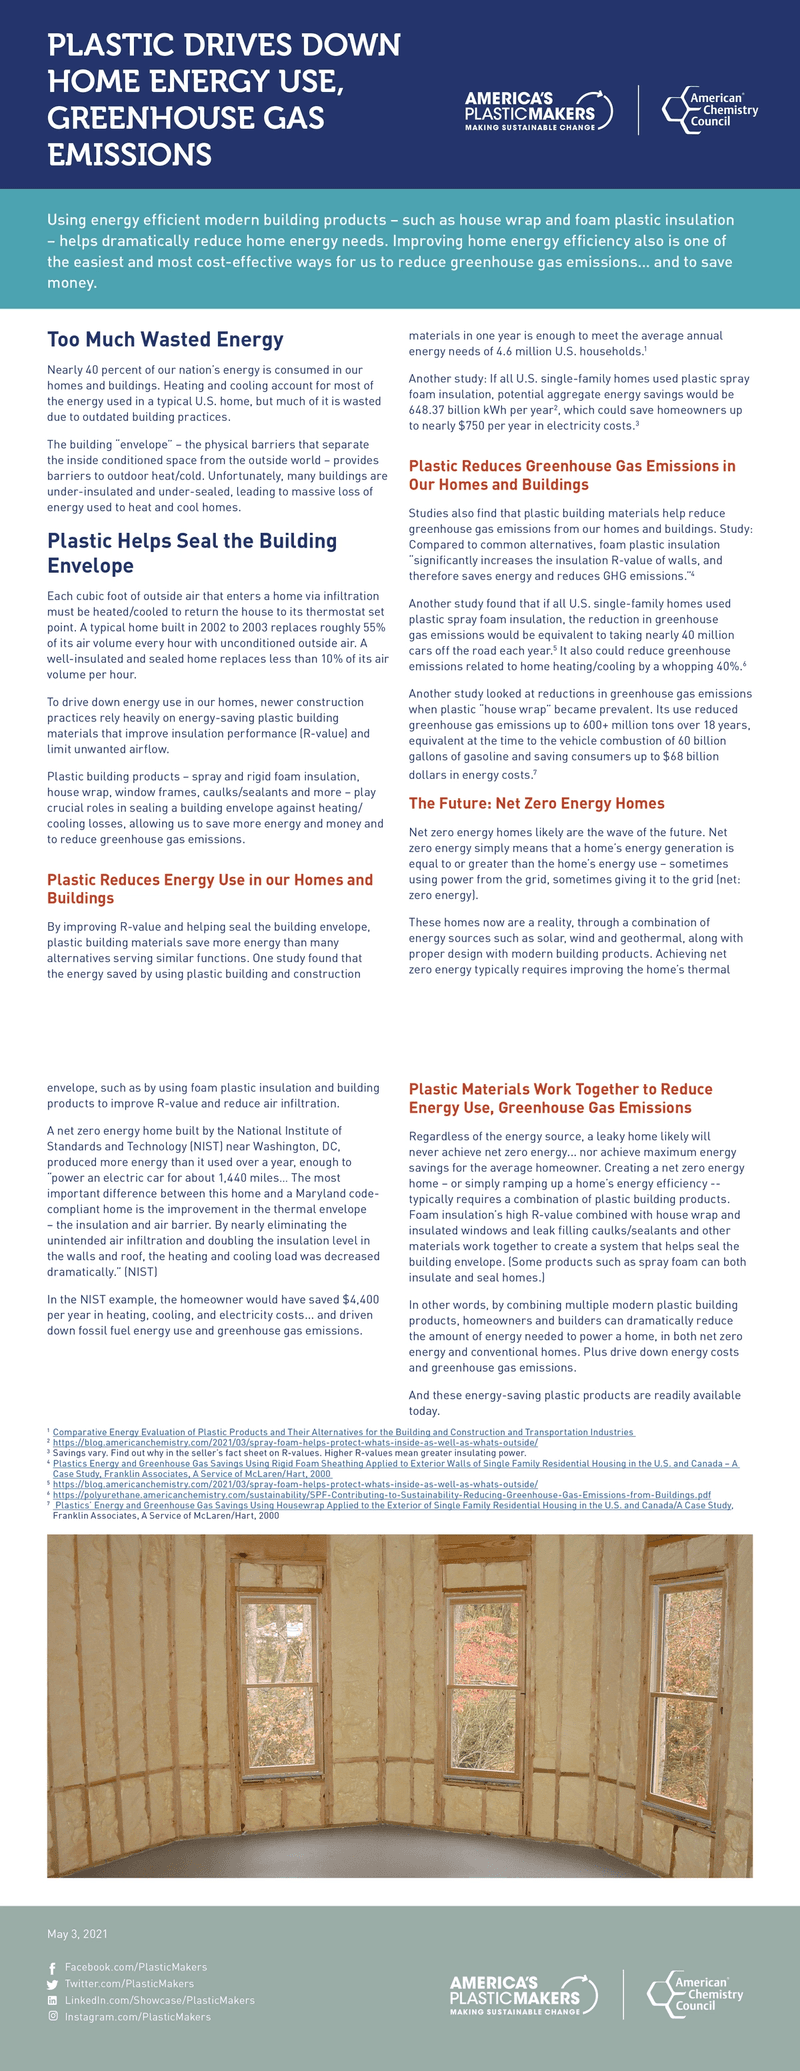 Fact Sheet on Plastic's Role in Home Energy Efficiency